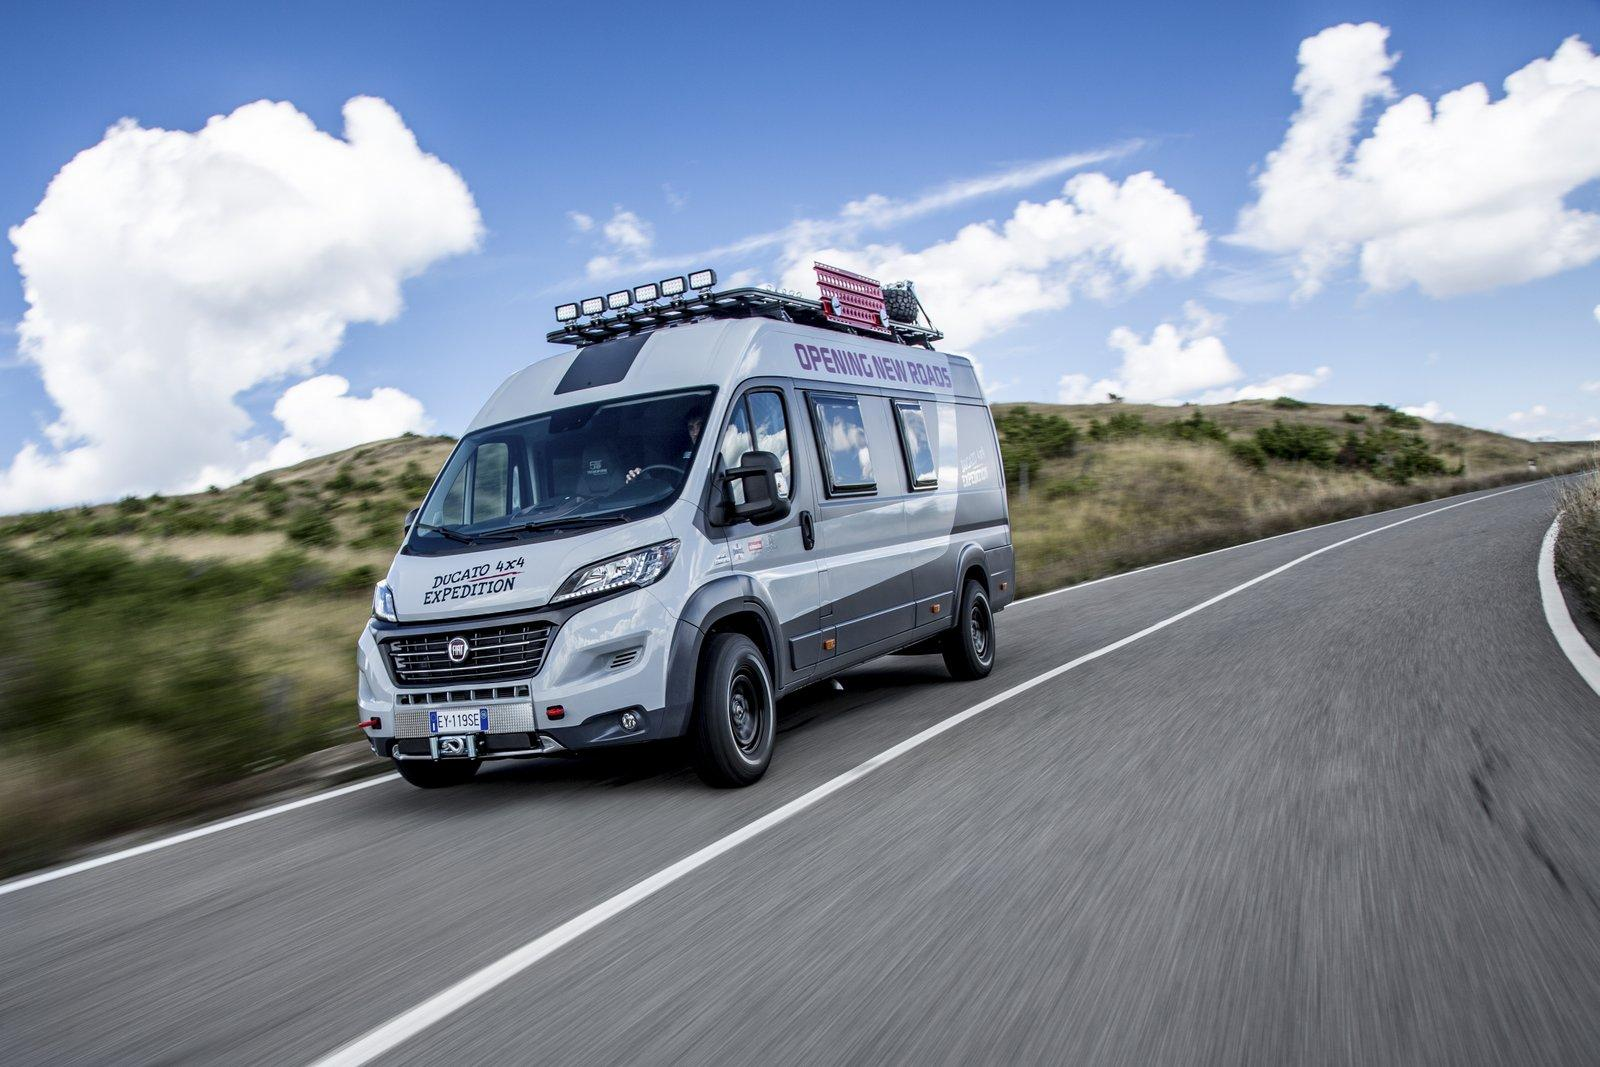 fiat ducato 4x4 expedition will take you camping where no one has ever camped before autoevolution. Black Bedroom Furniture Sets. Home Design Ideas